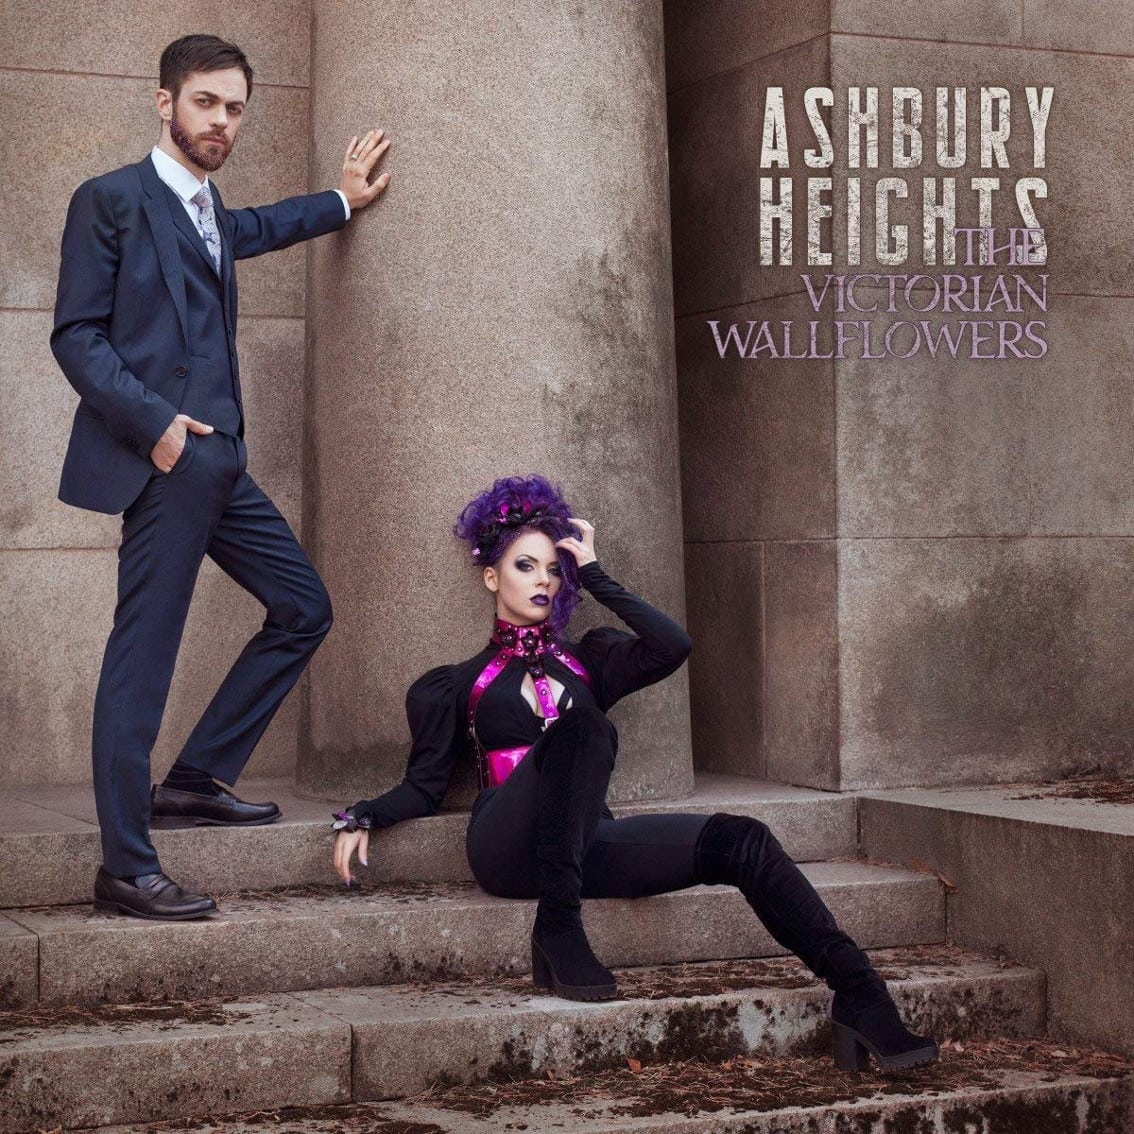 Ashbury Heights return with new album after 3 years:'The Victorian Wallflowers'